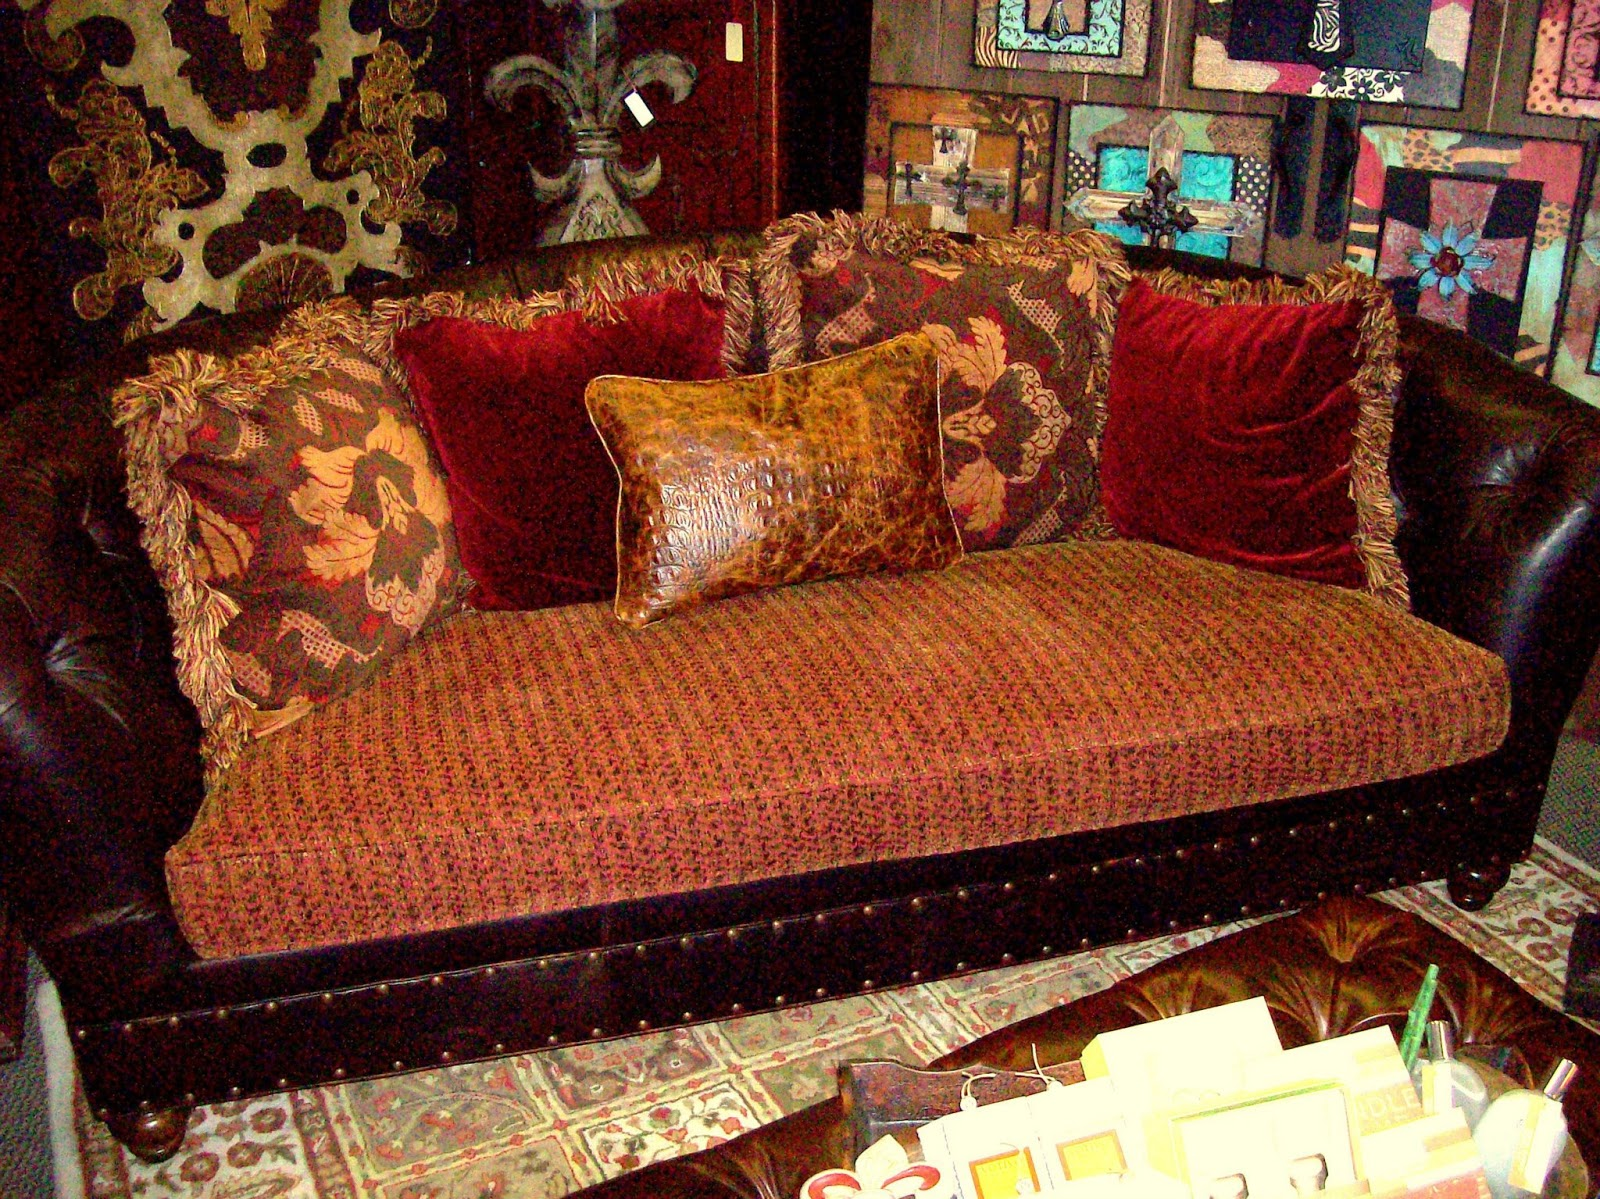 Loveseat Couch Craigslist 100 Room And Board Outdoor Dining Room Room And Board Dinin 100